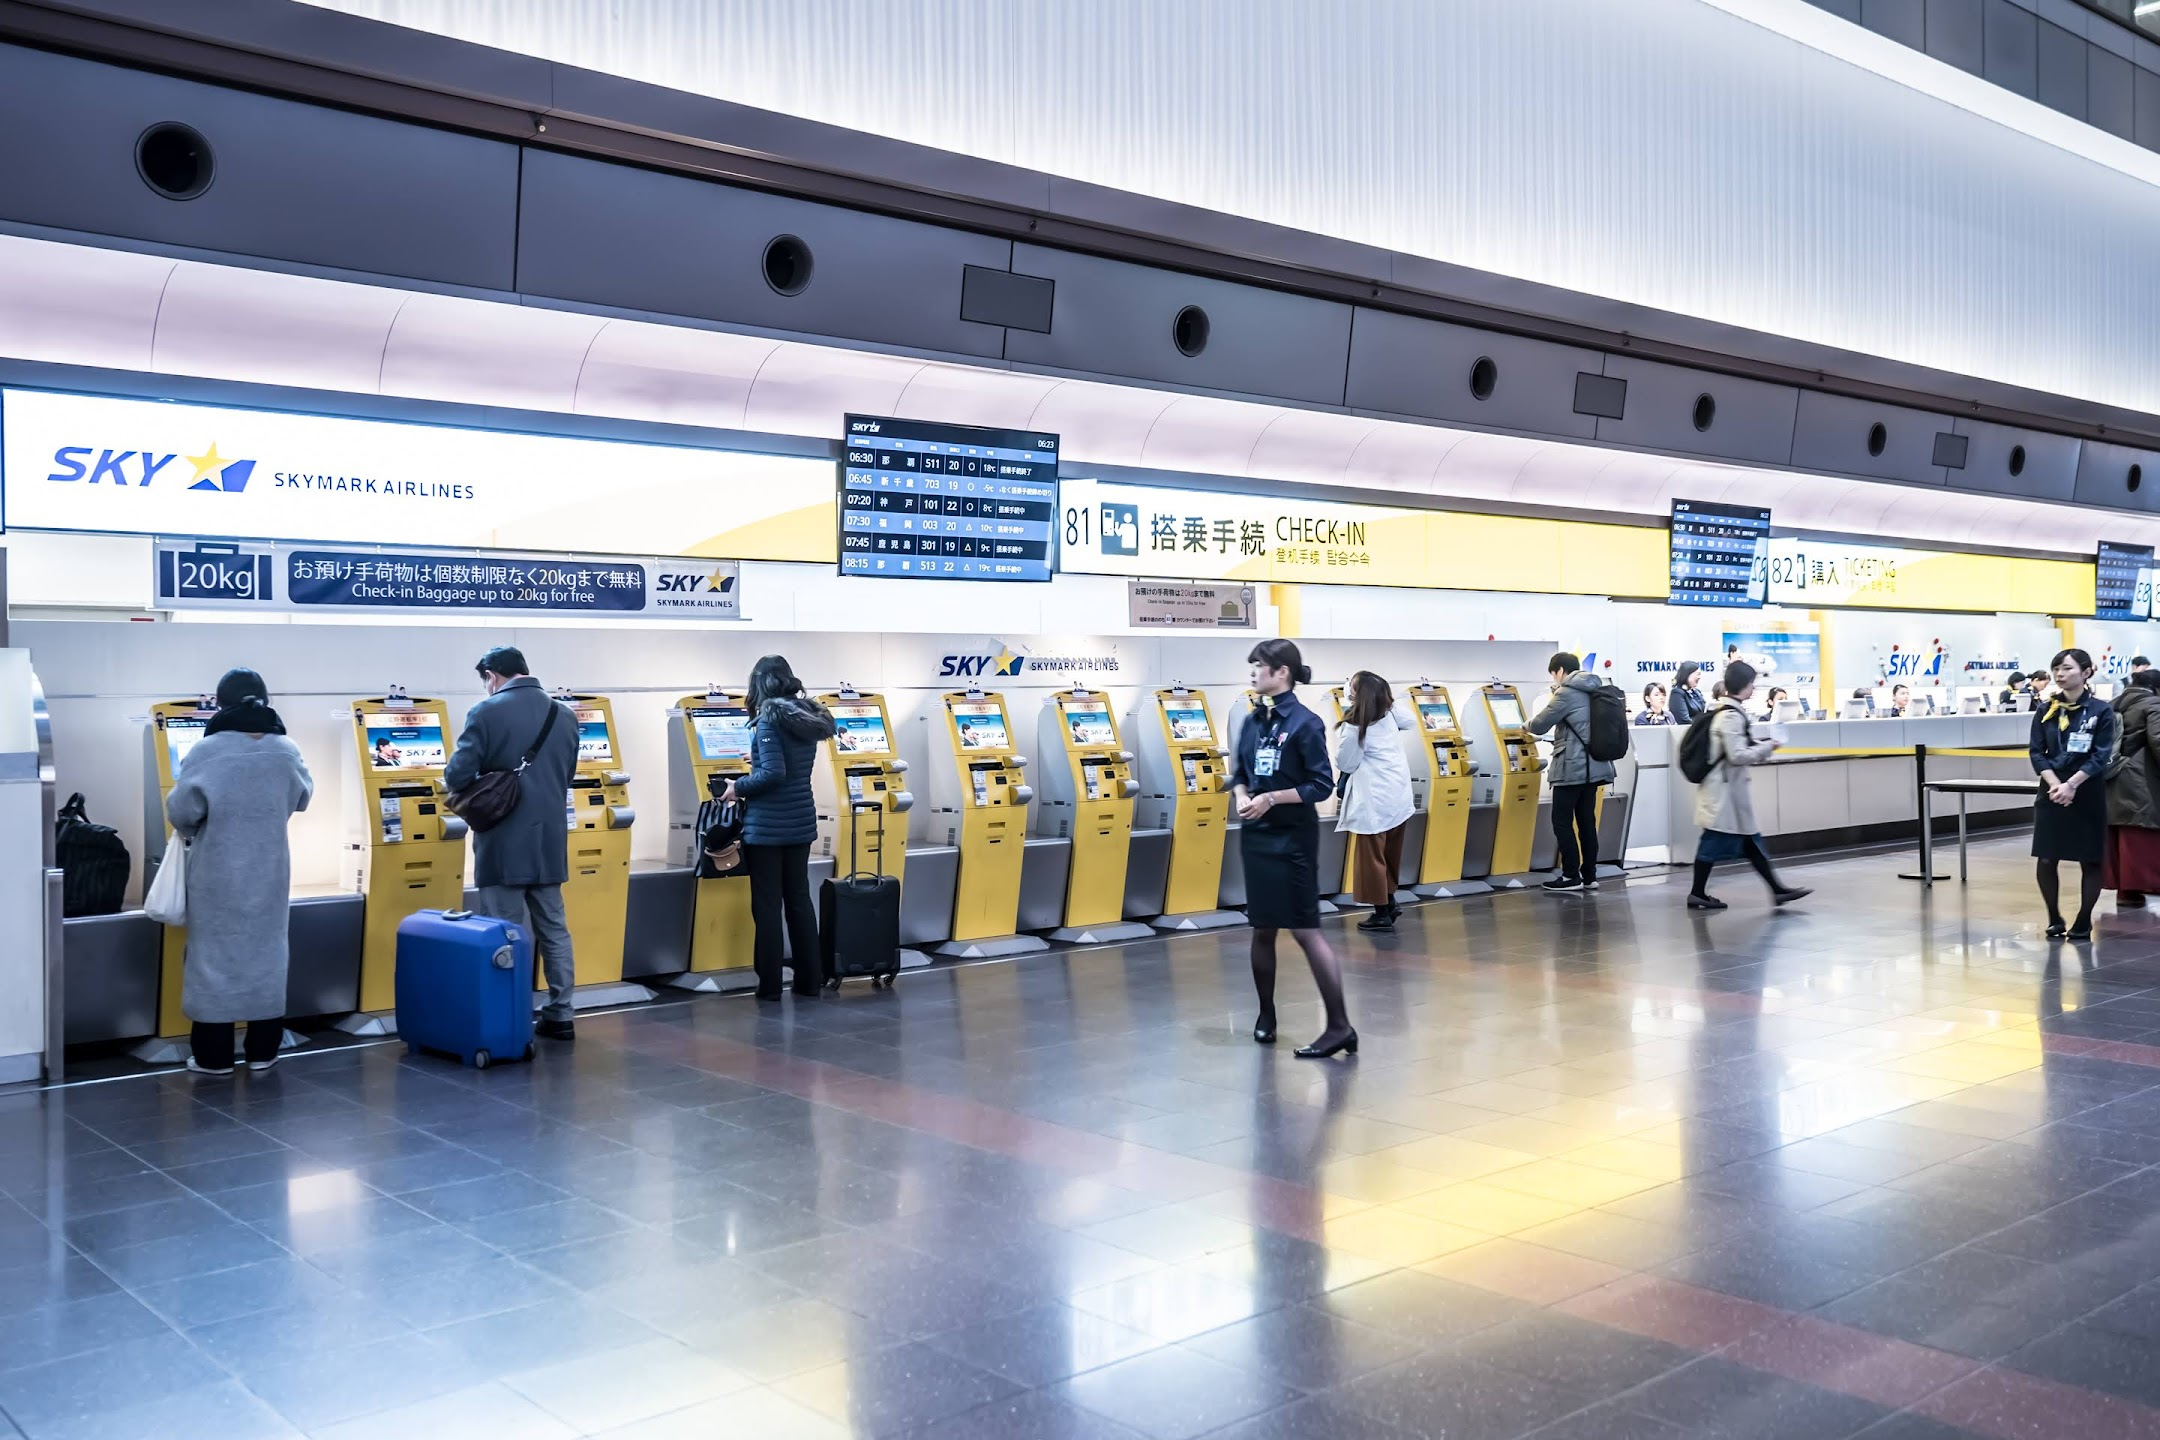 Haneda Airport Skymark check-in counter